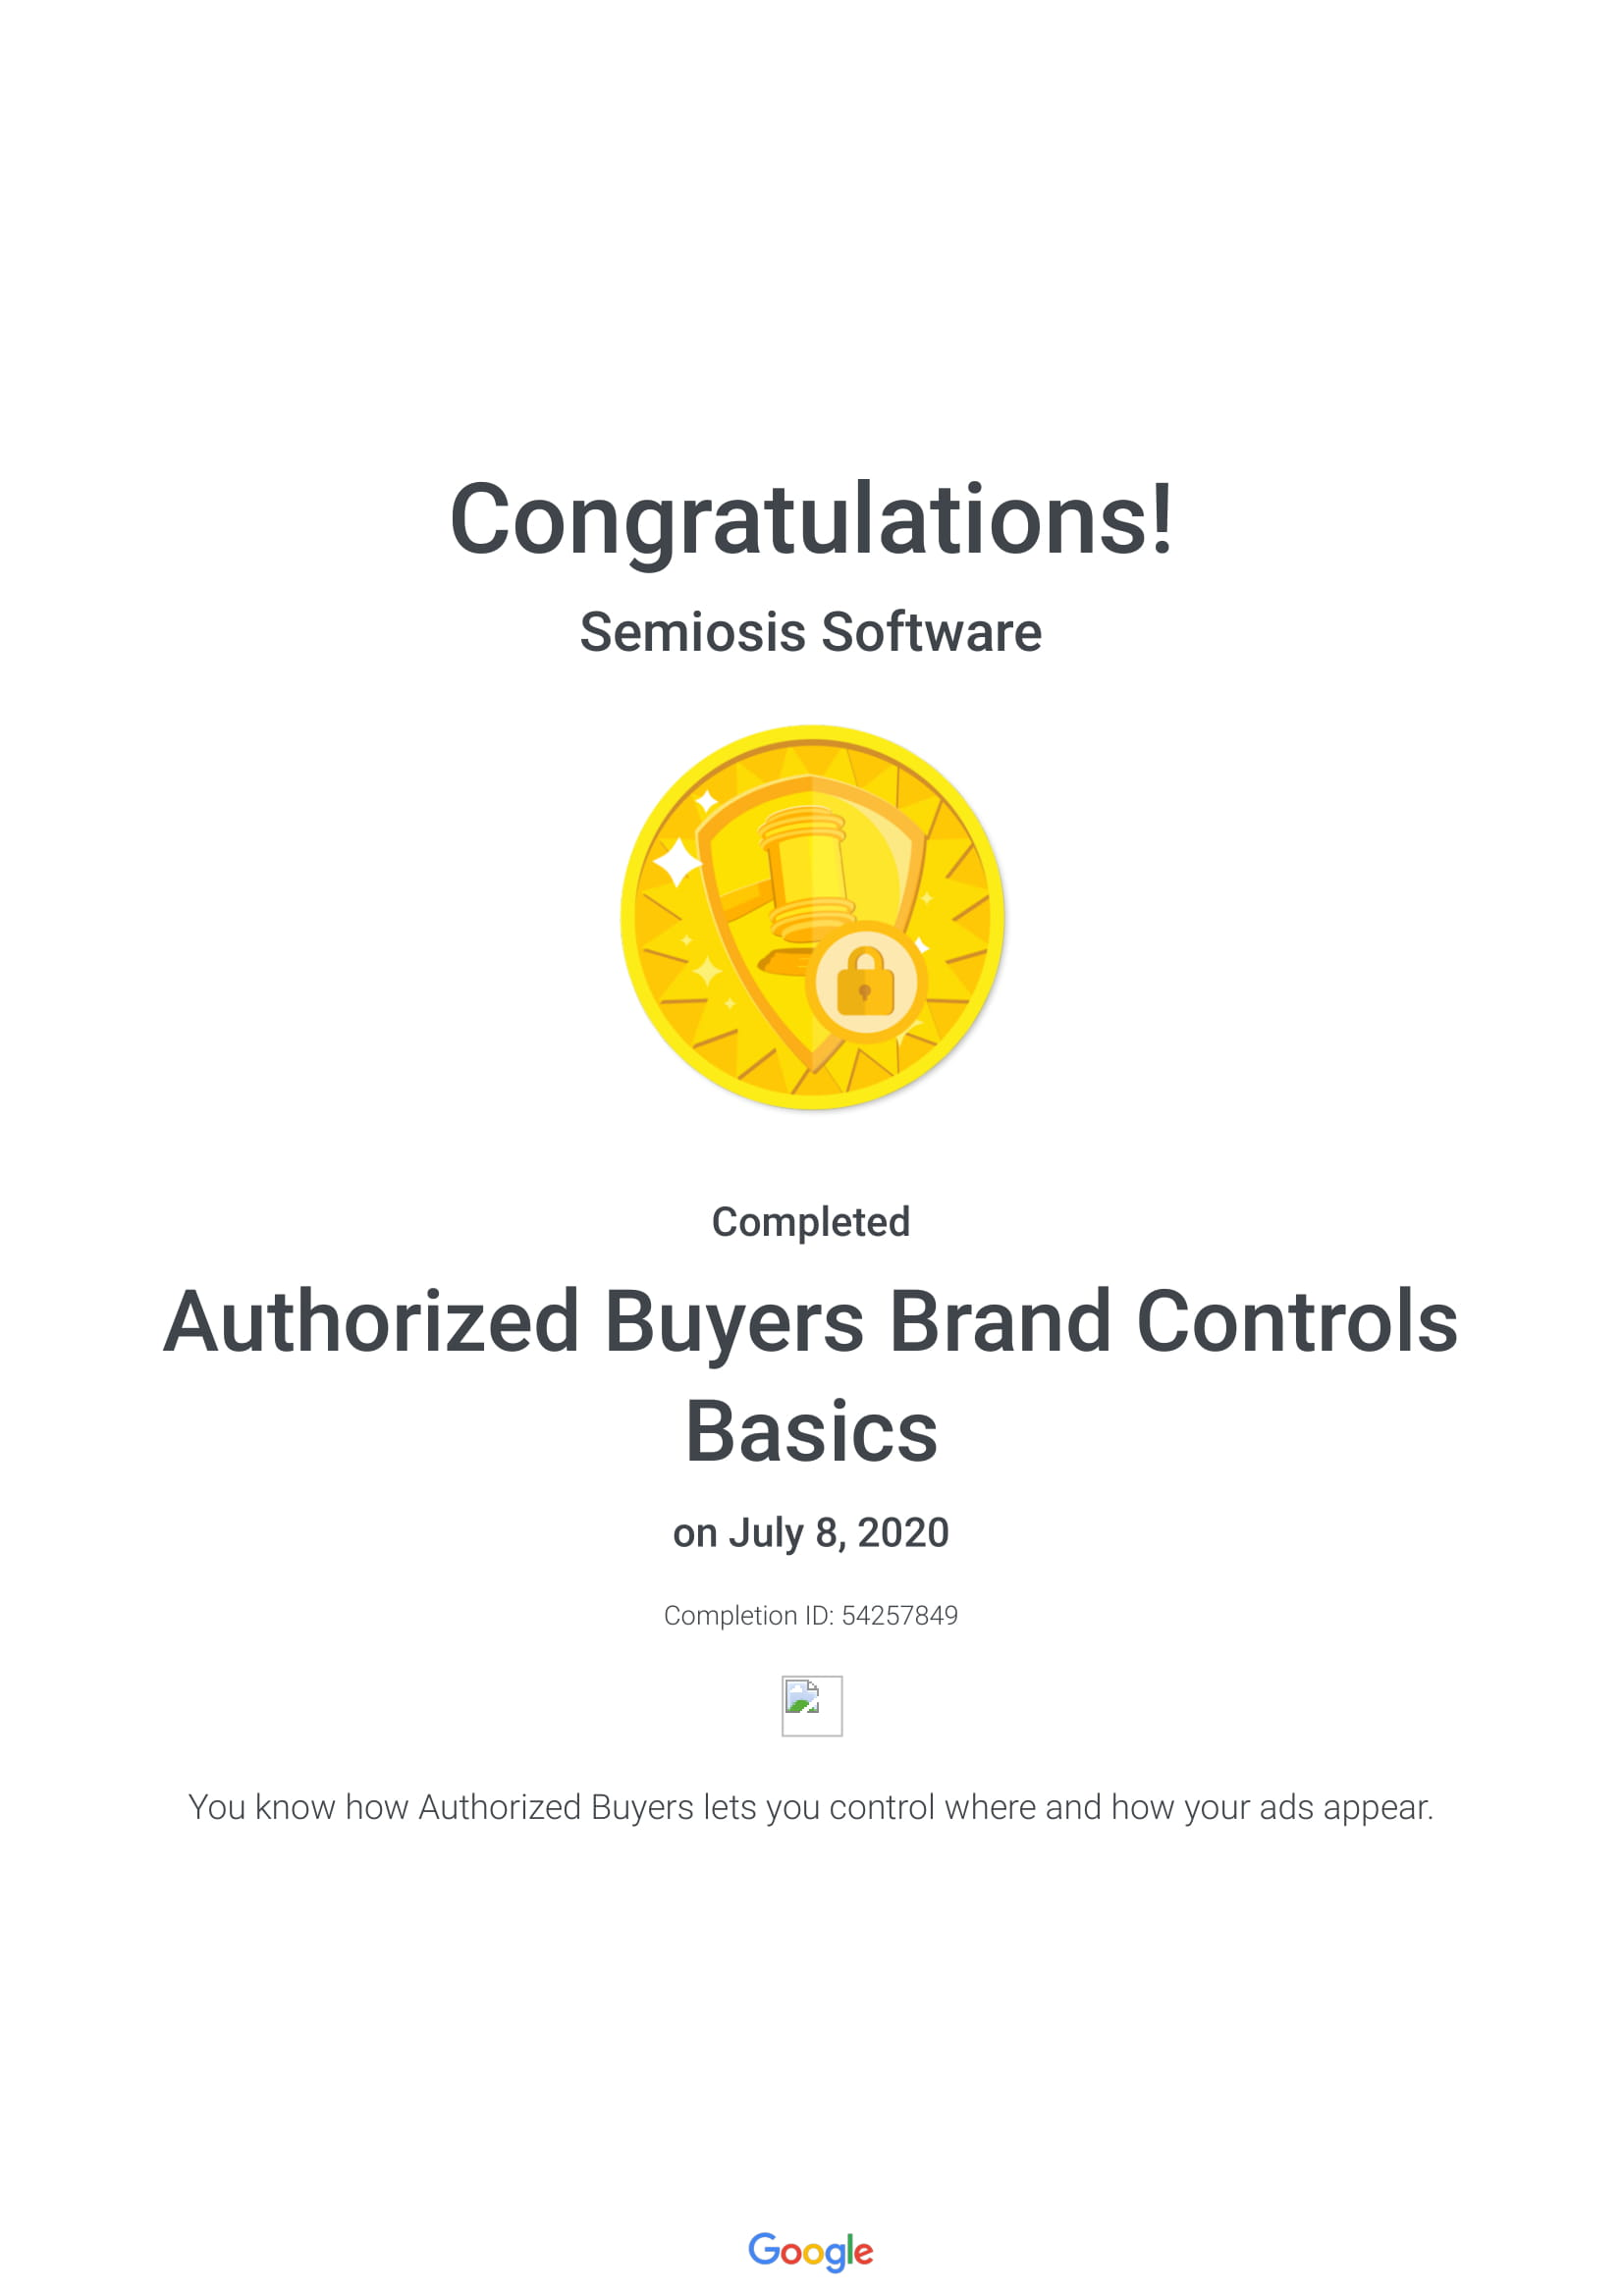 Authorized Buyers Brand Controls Basics